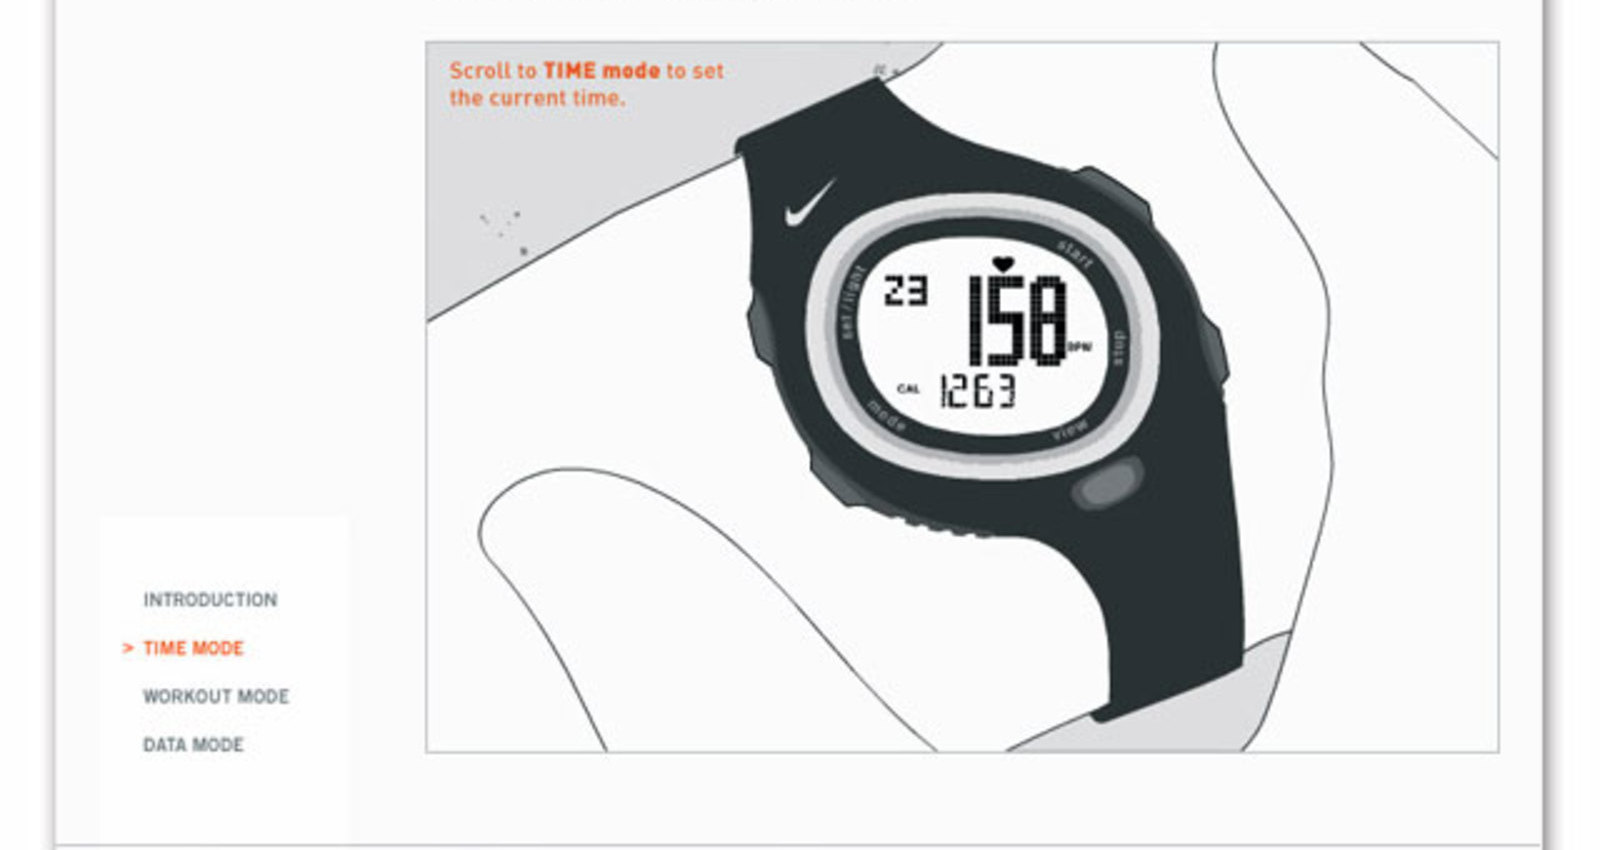 Nike HRM/SDM interactive tutorial